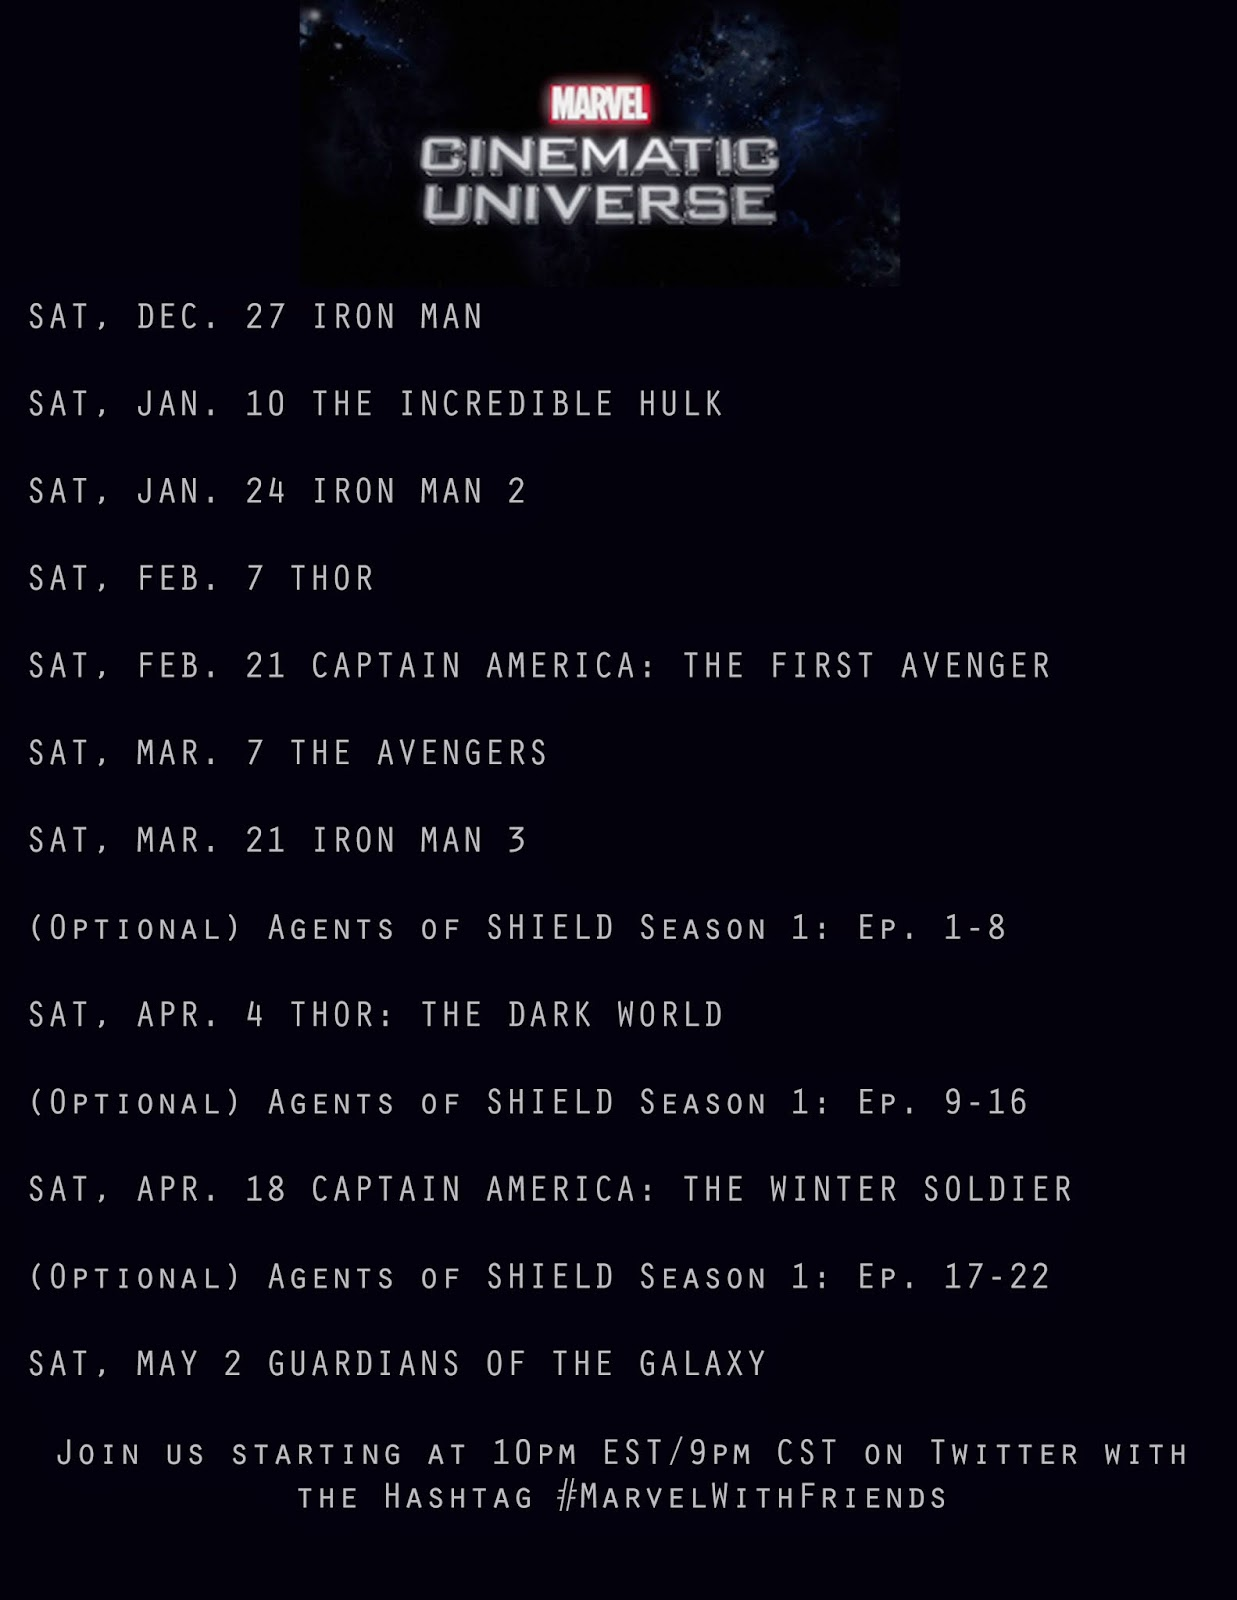 Marvel With Friends movie schedule